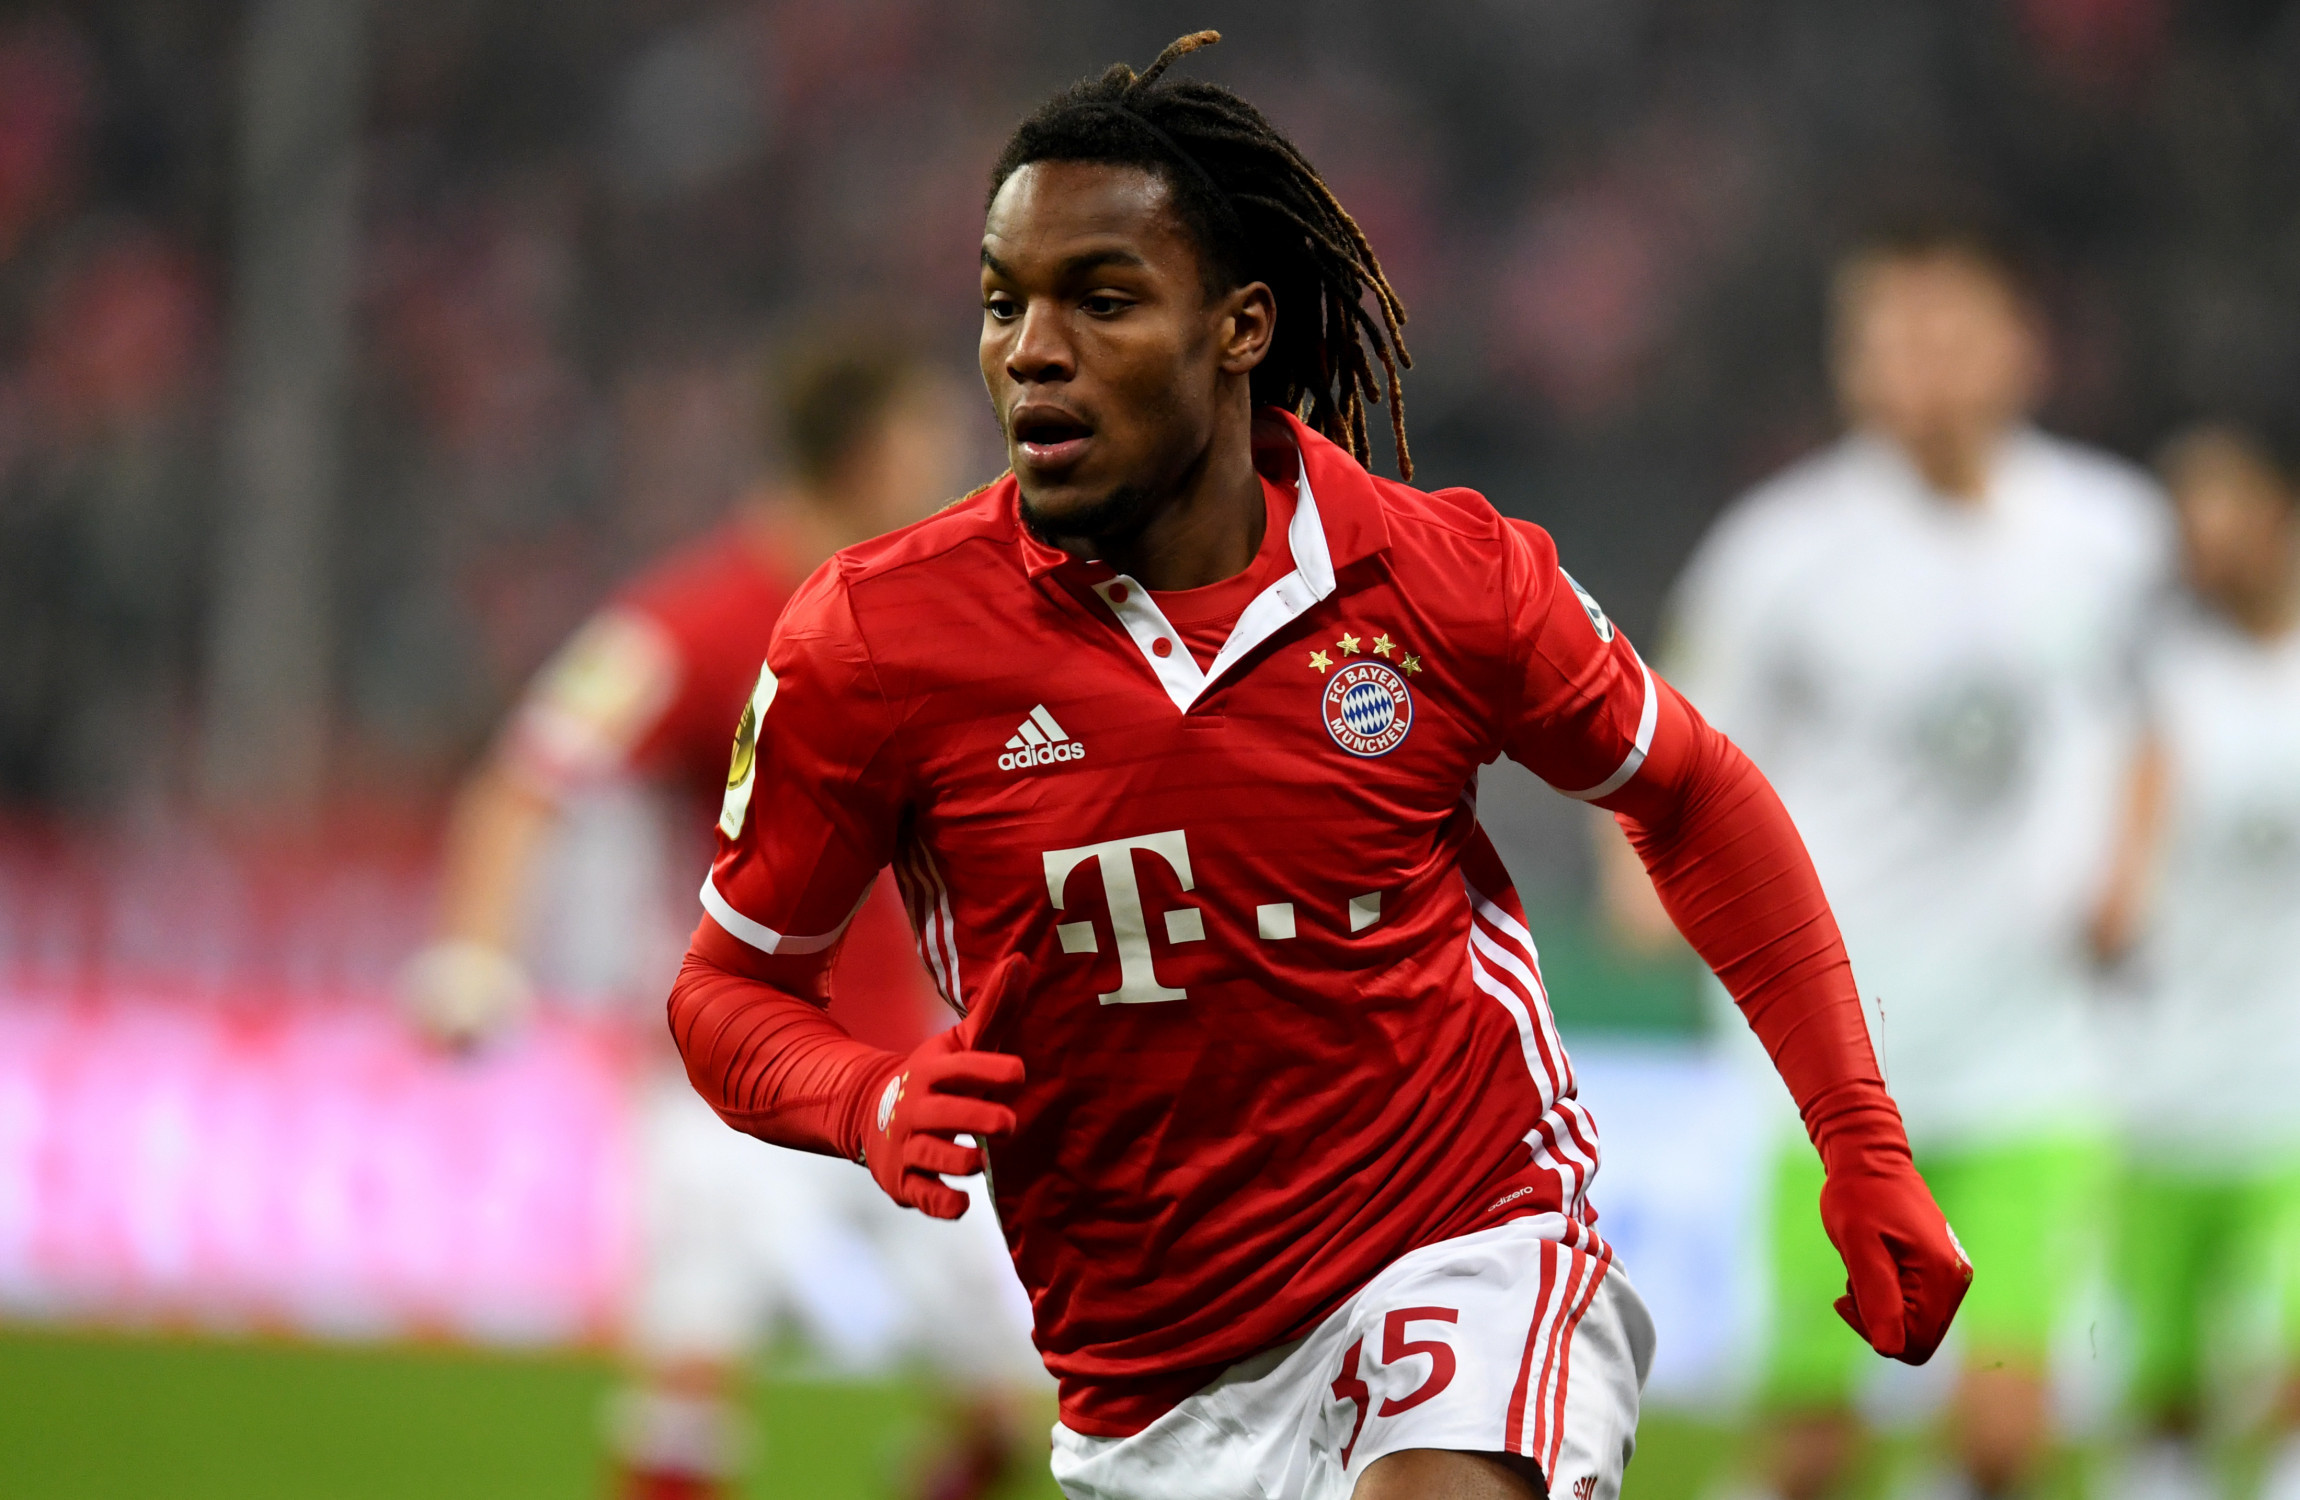 Voted the best young player at Euro 2016 Renato Sanches is